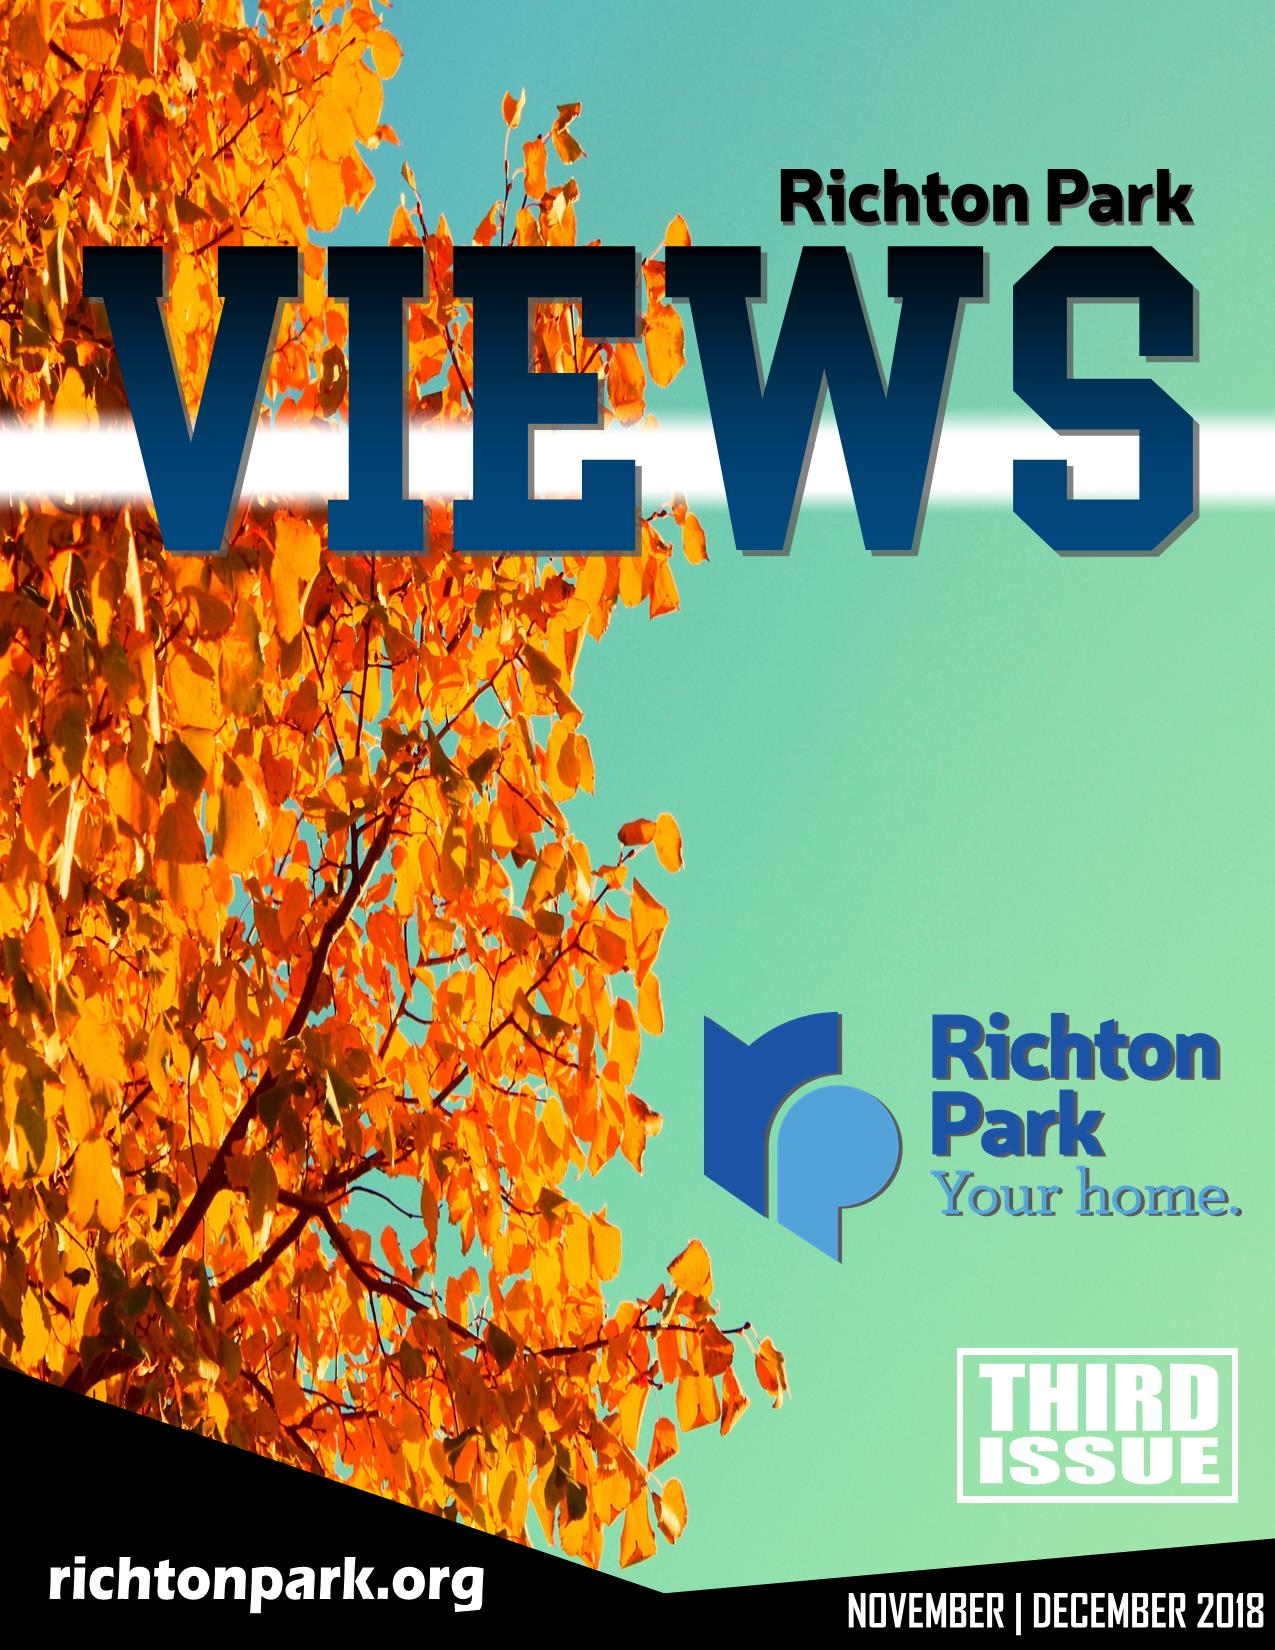 Richton Park Review - Third Issue Cover